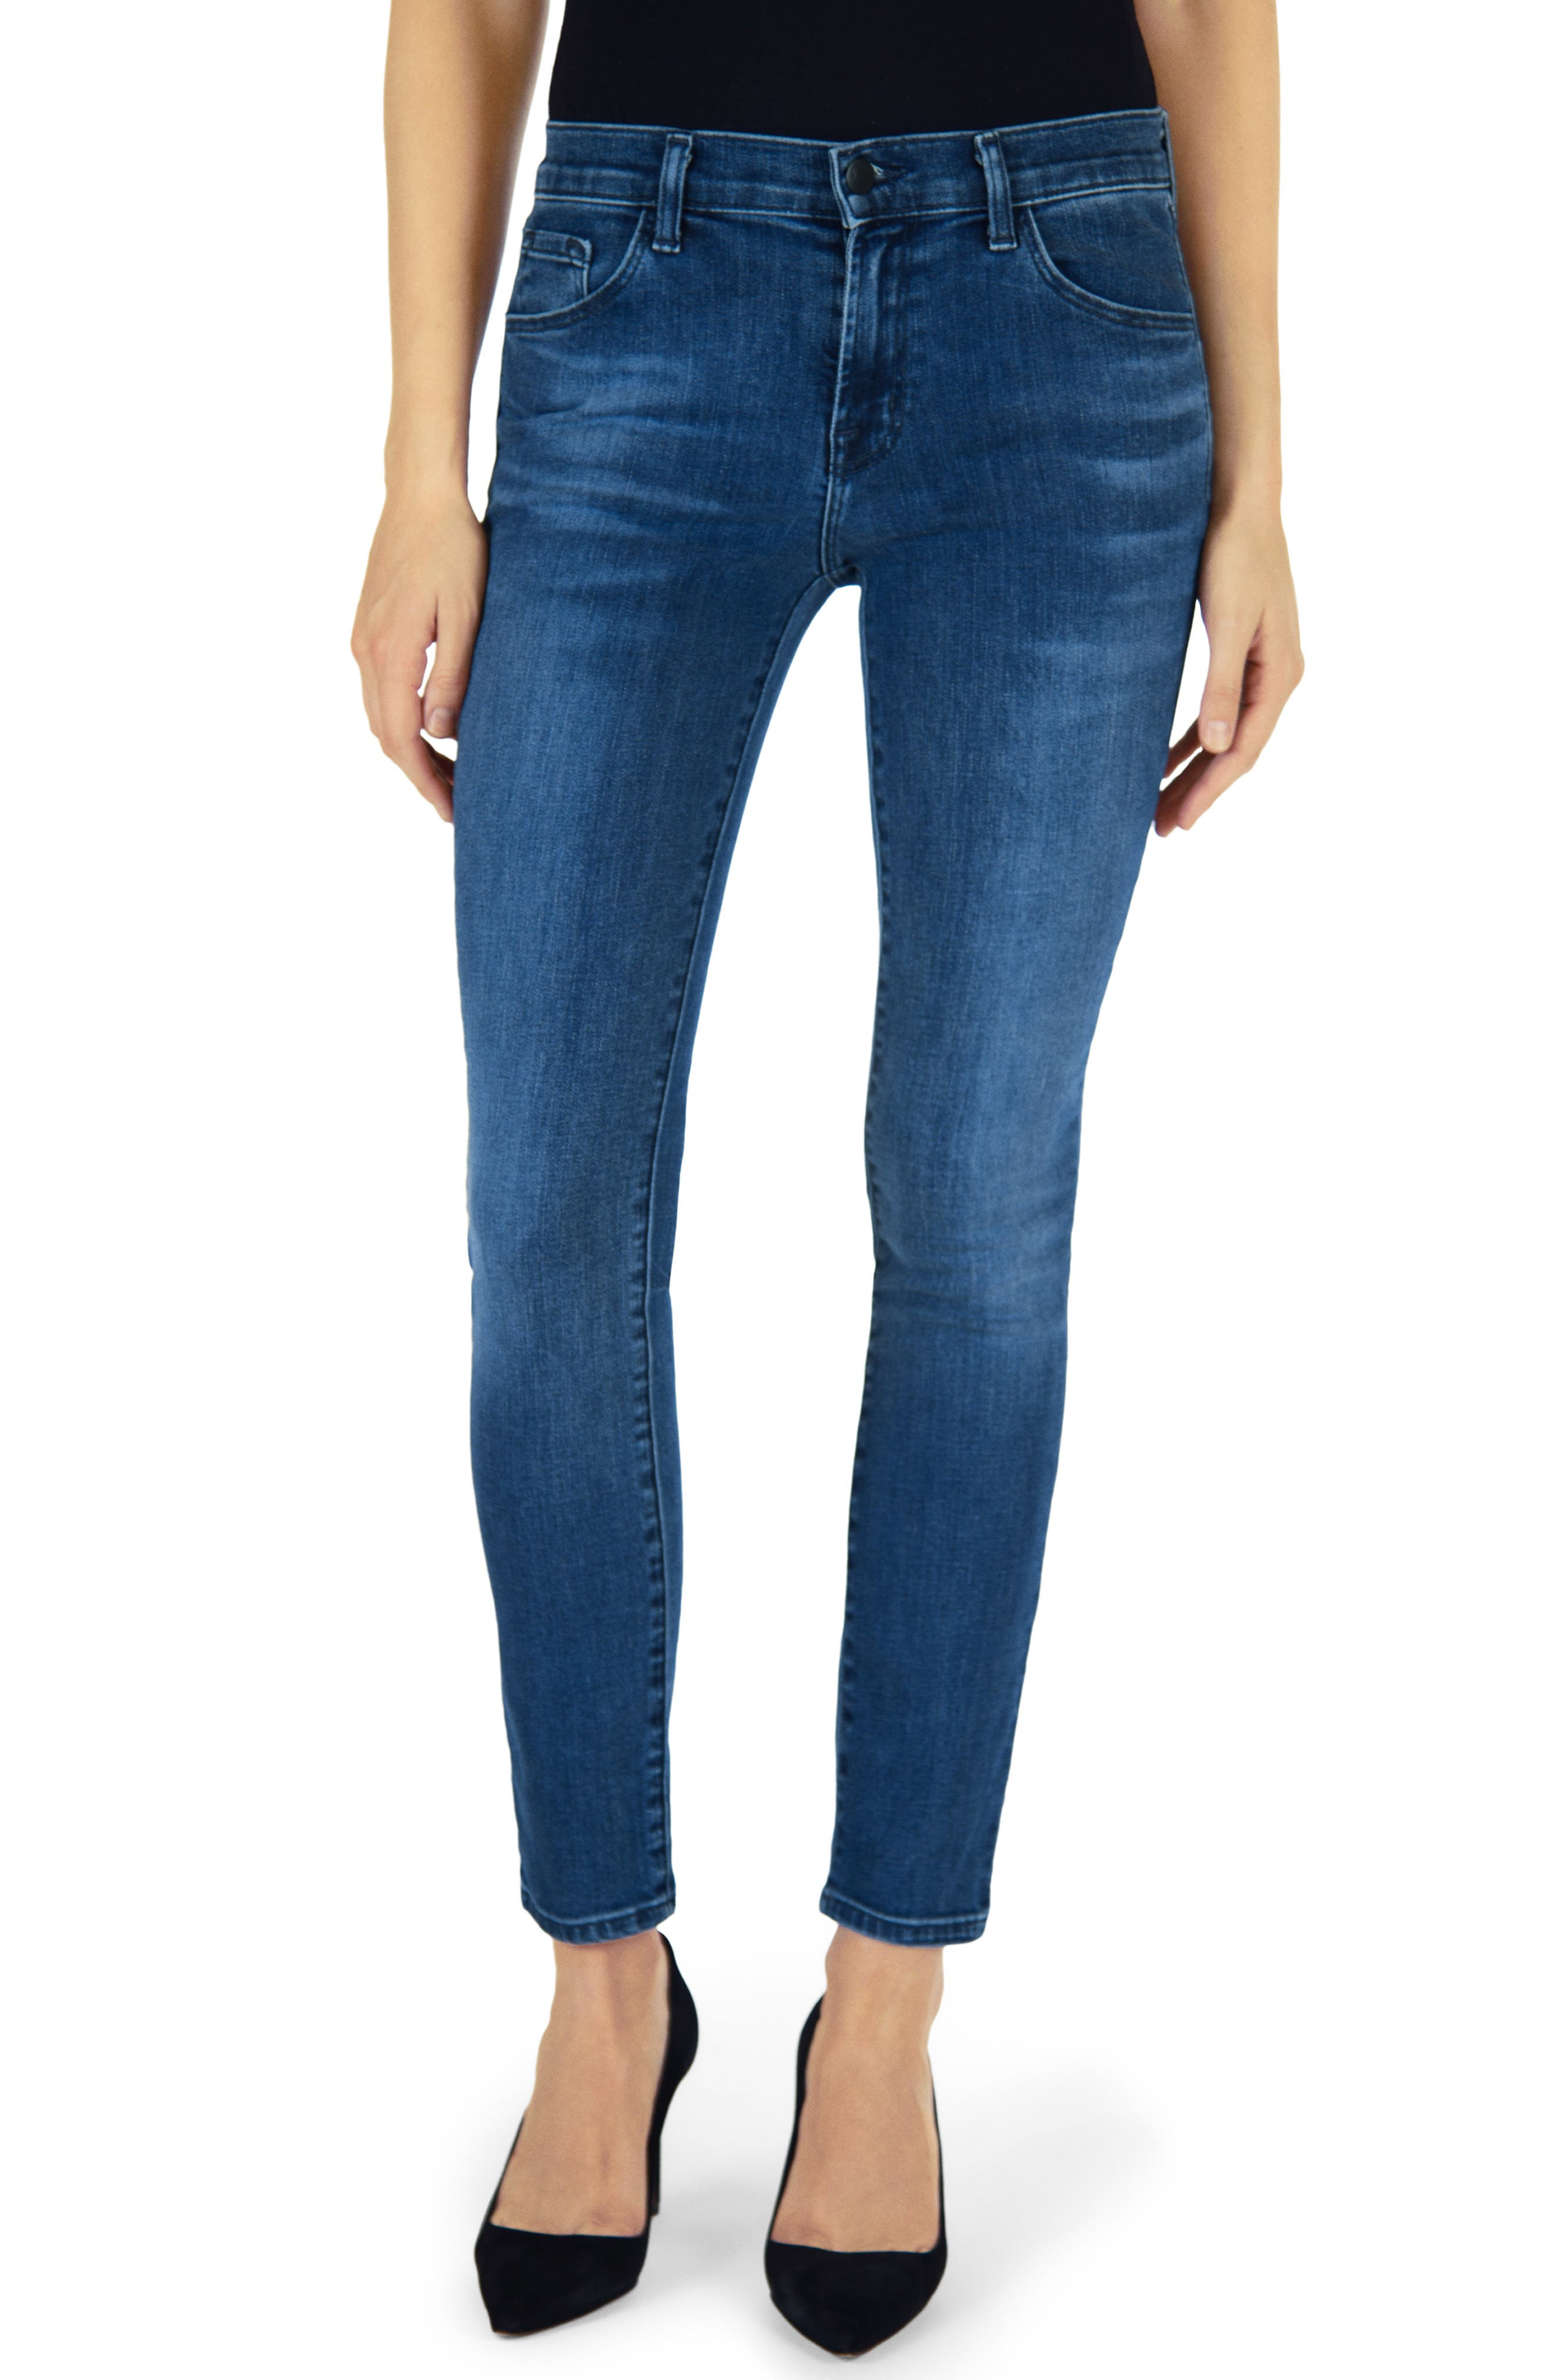 811 Skinny Jeans,                         Main,                         color, 400